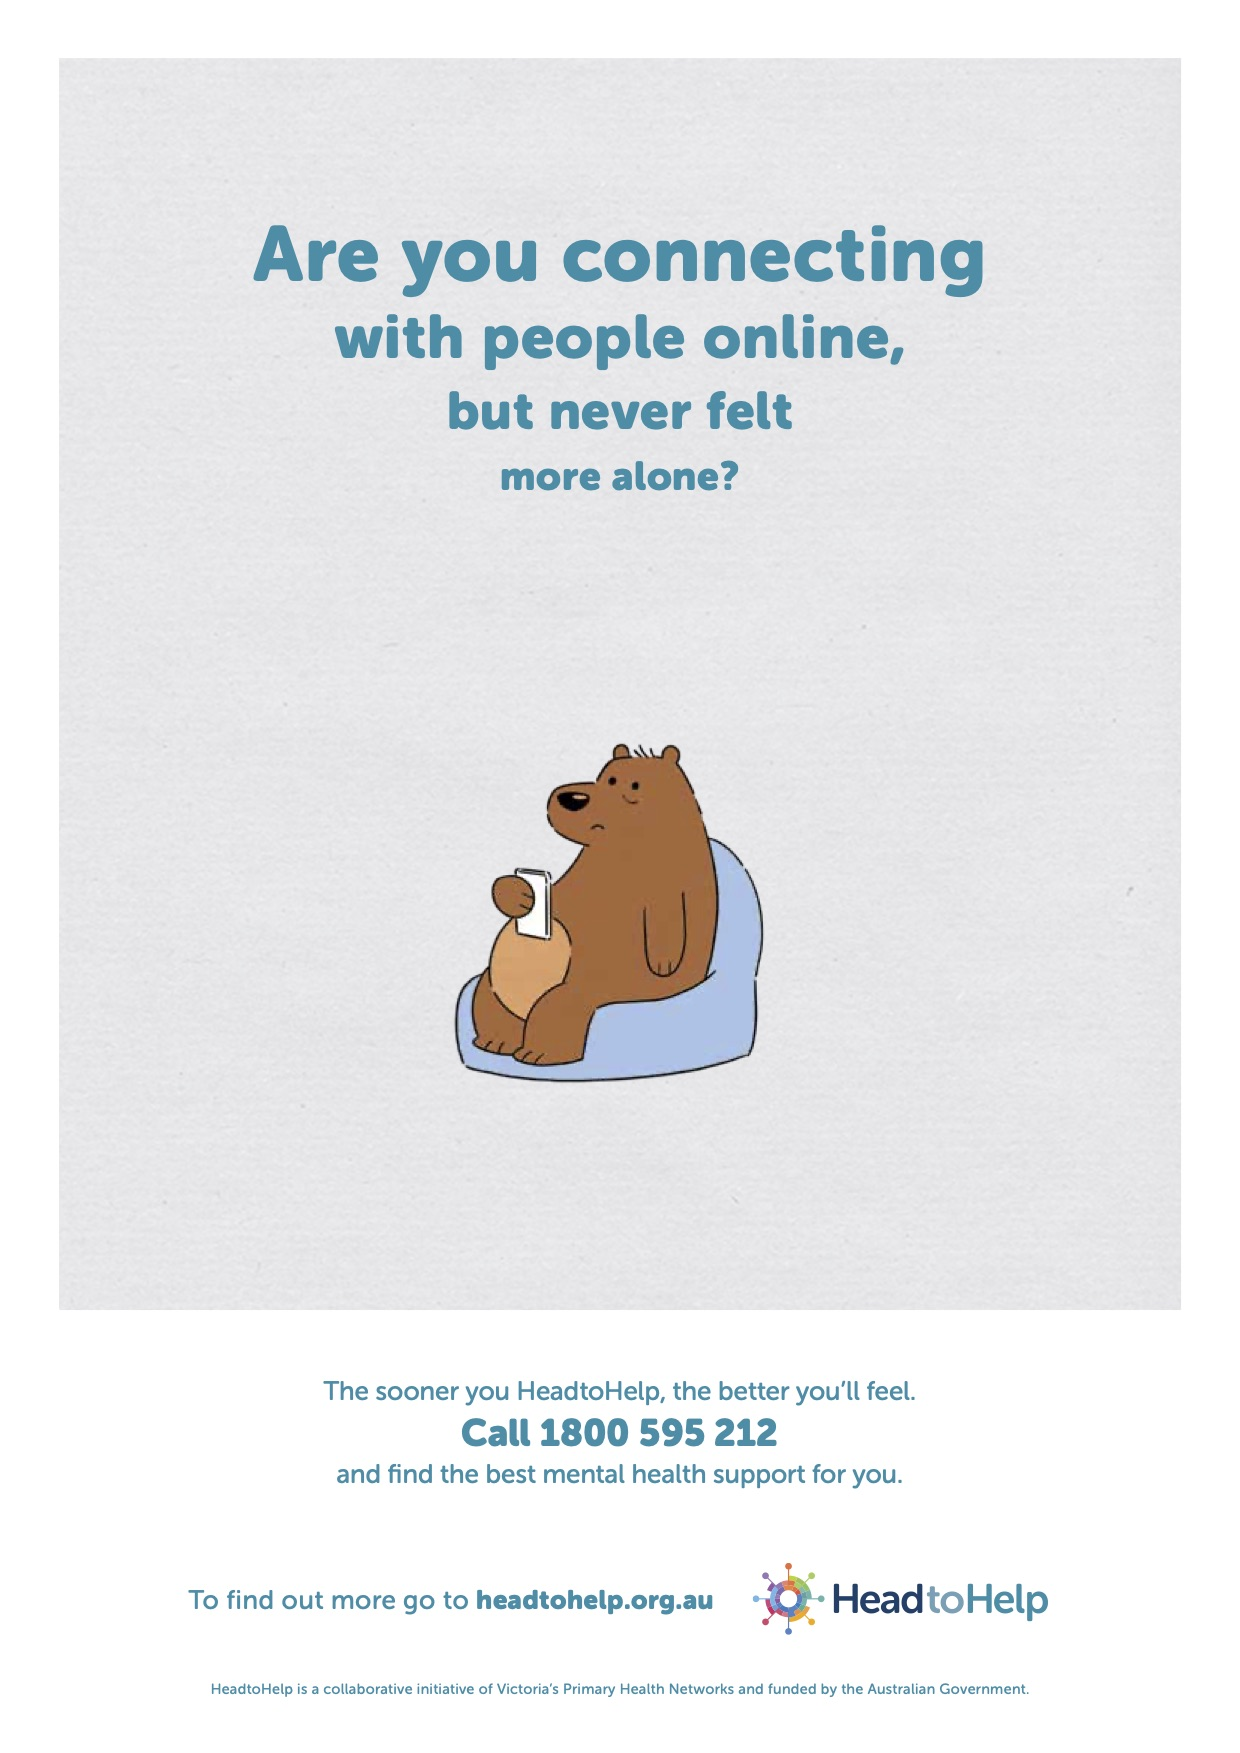 Victorians encouraged to HeadtoHelp in new mental health campaign via Icon Agency